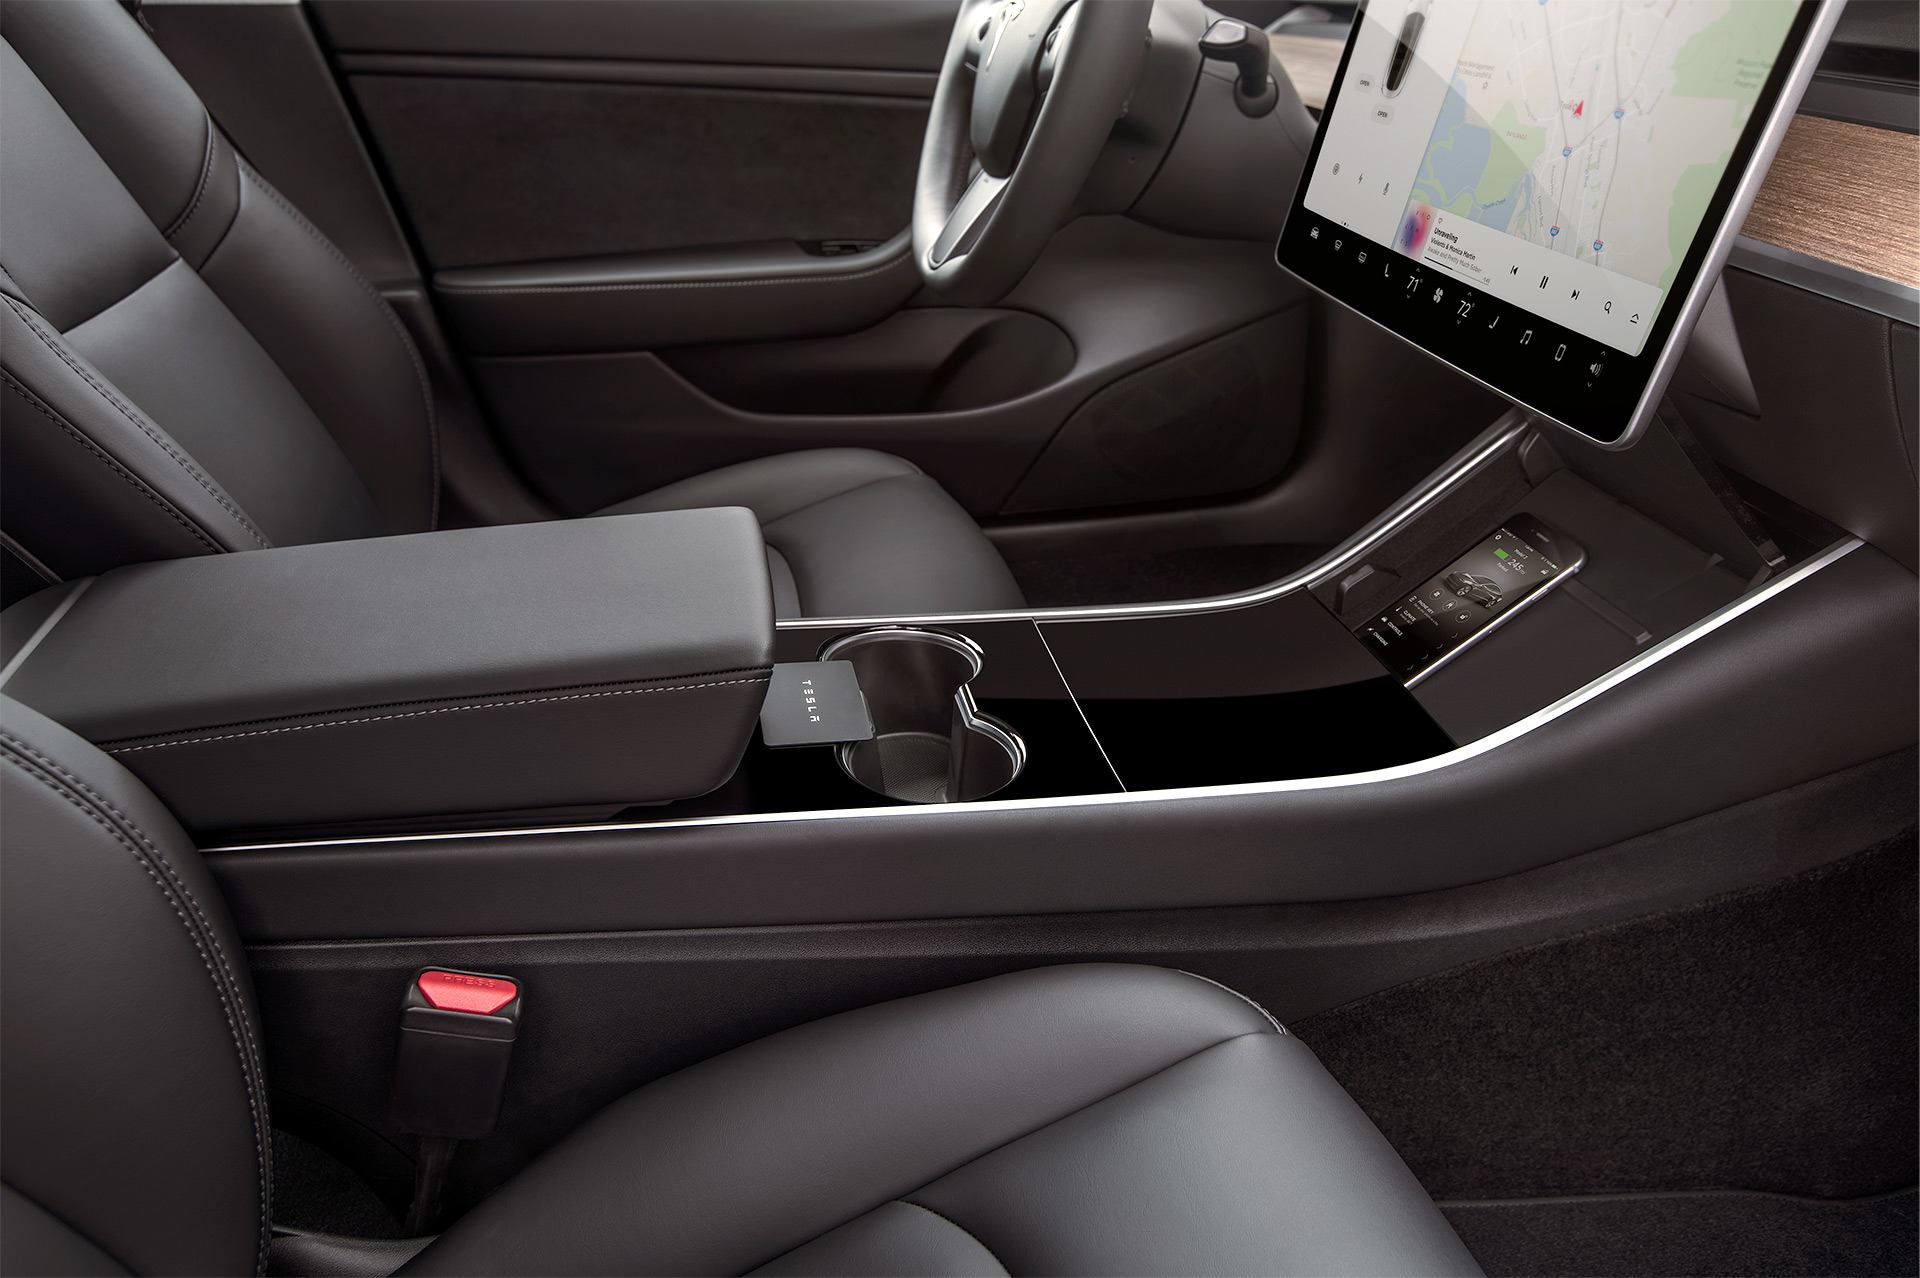 Tesla Model 3 Official Hd Photos Show Mobile App And Key